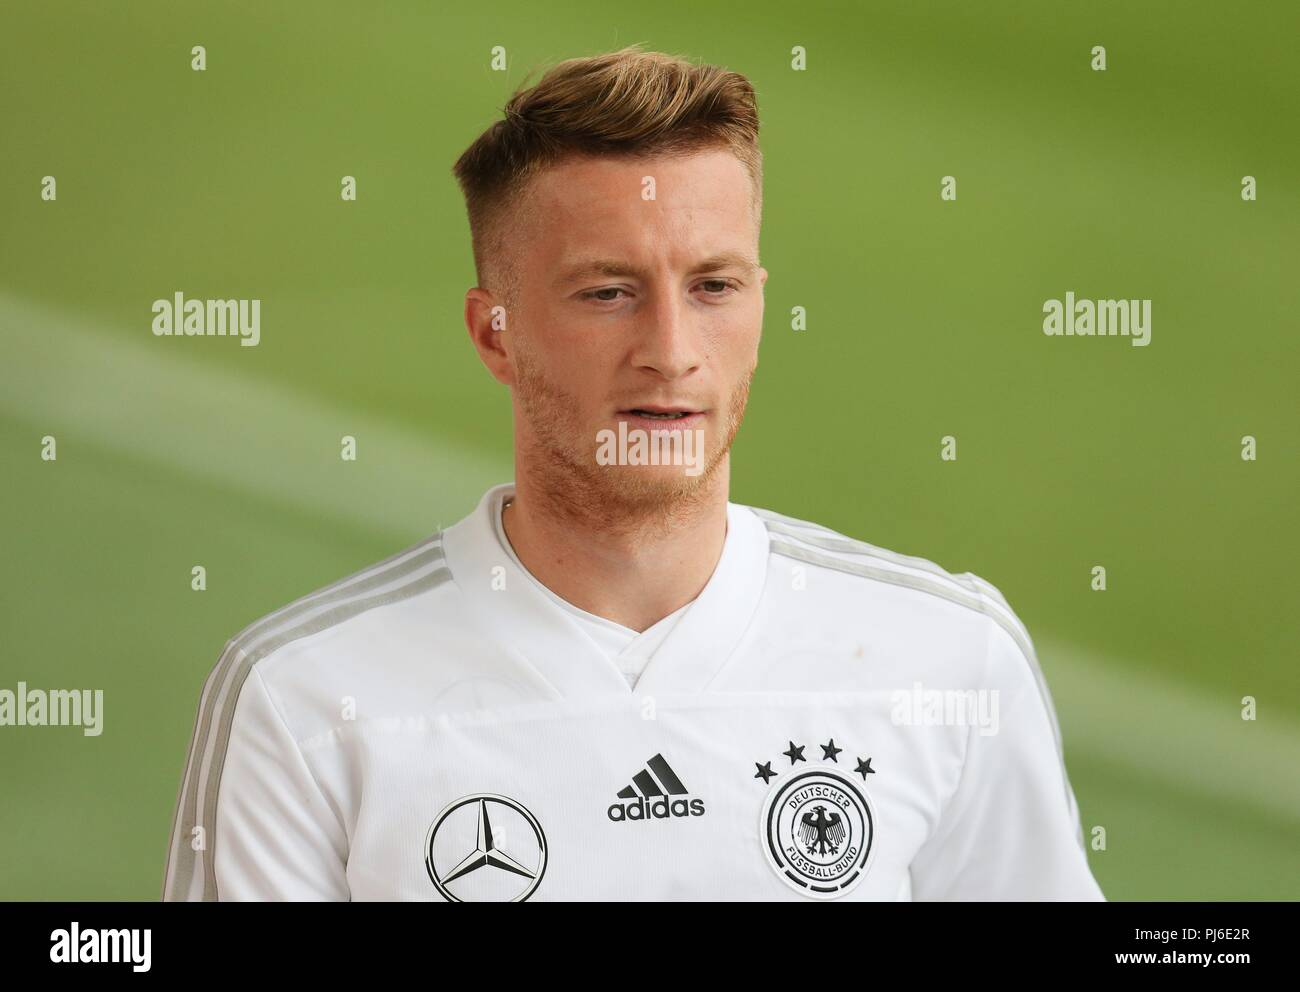 firo: 04.09.2018, Fuvuball, football, national team, training, Marco Reus, DFB, half figure, Germany | usage worldwide - Stock Image